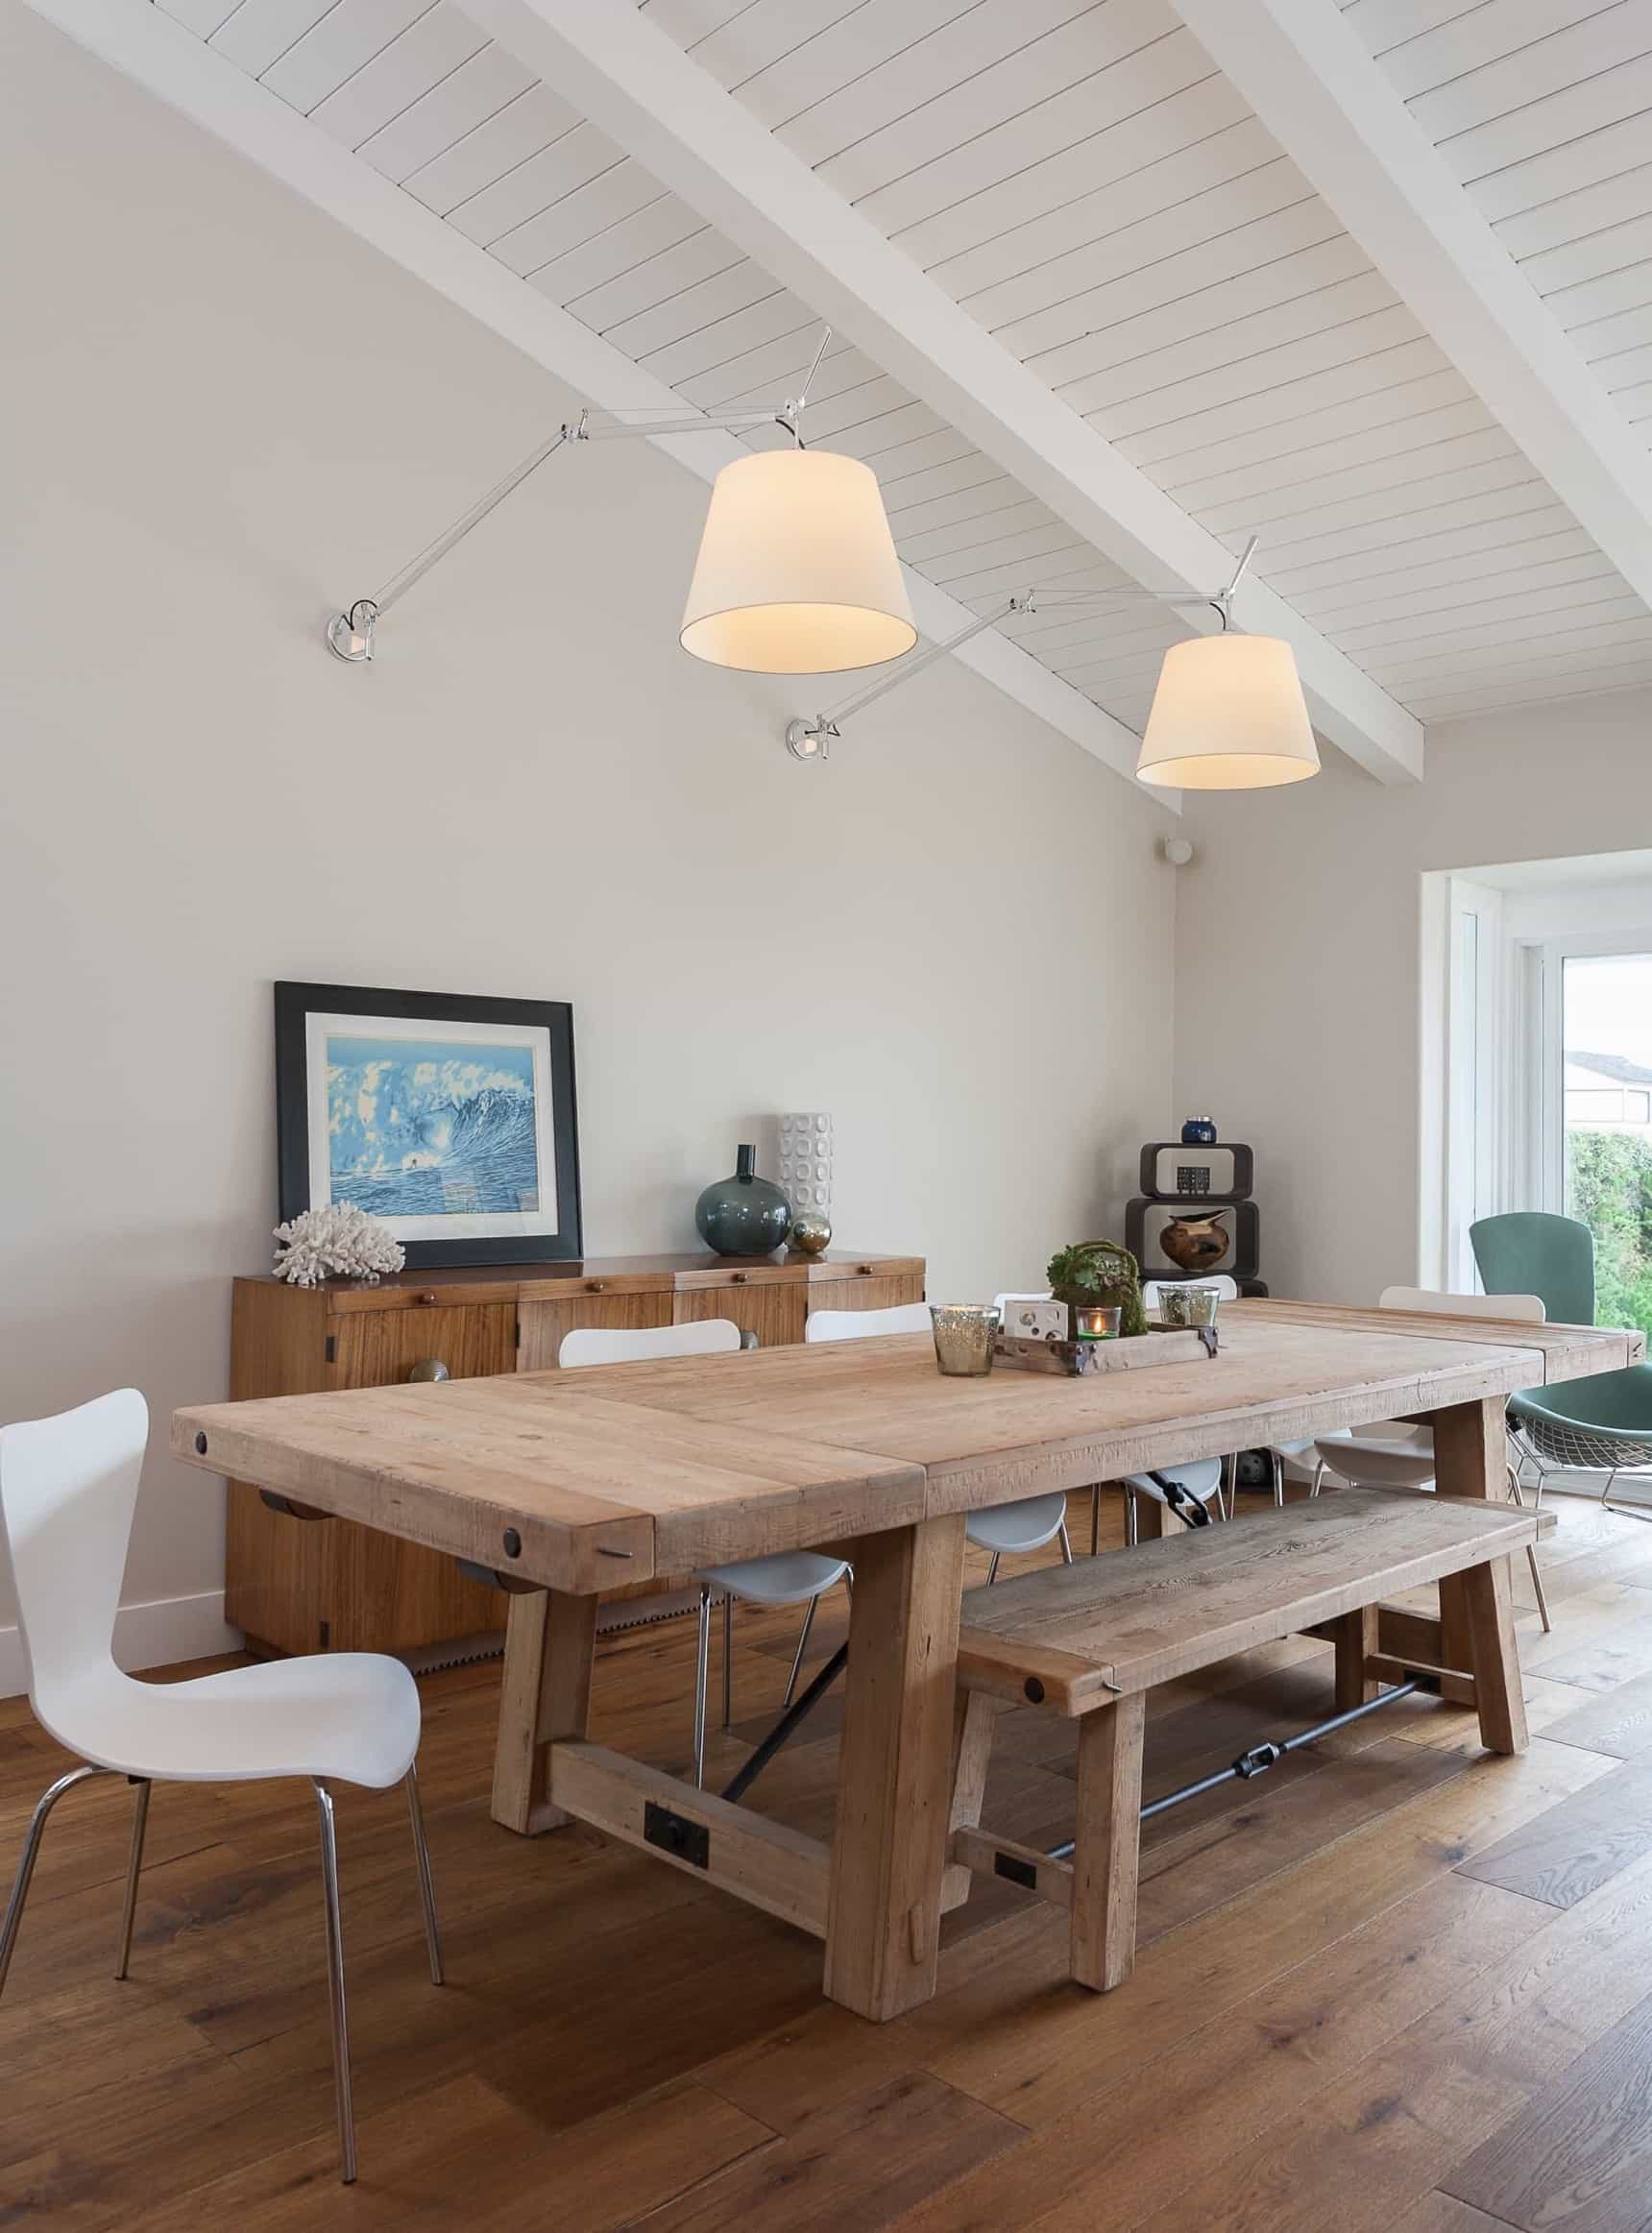 Featured Image of White Coastal Dining Room With Wood Table